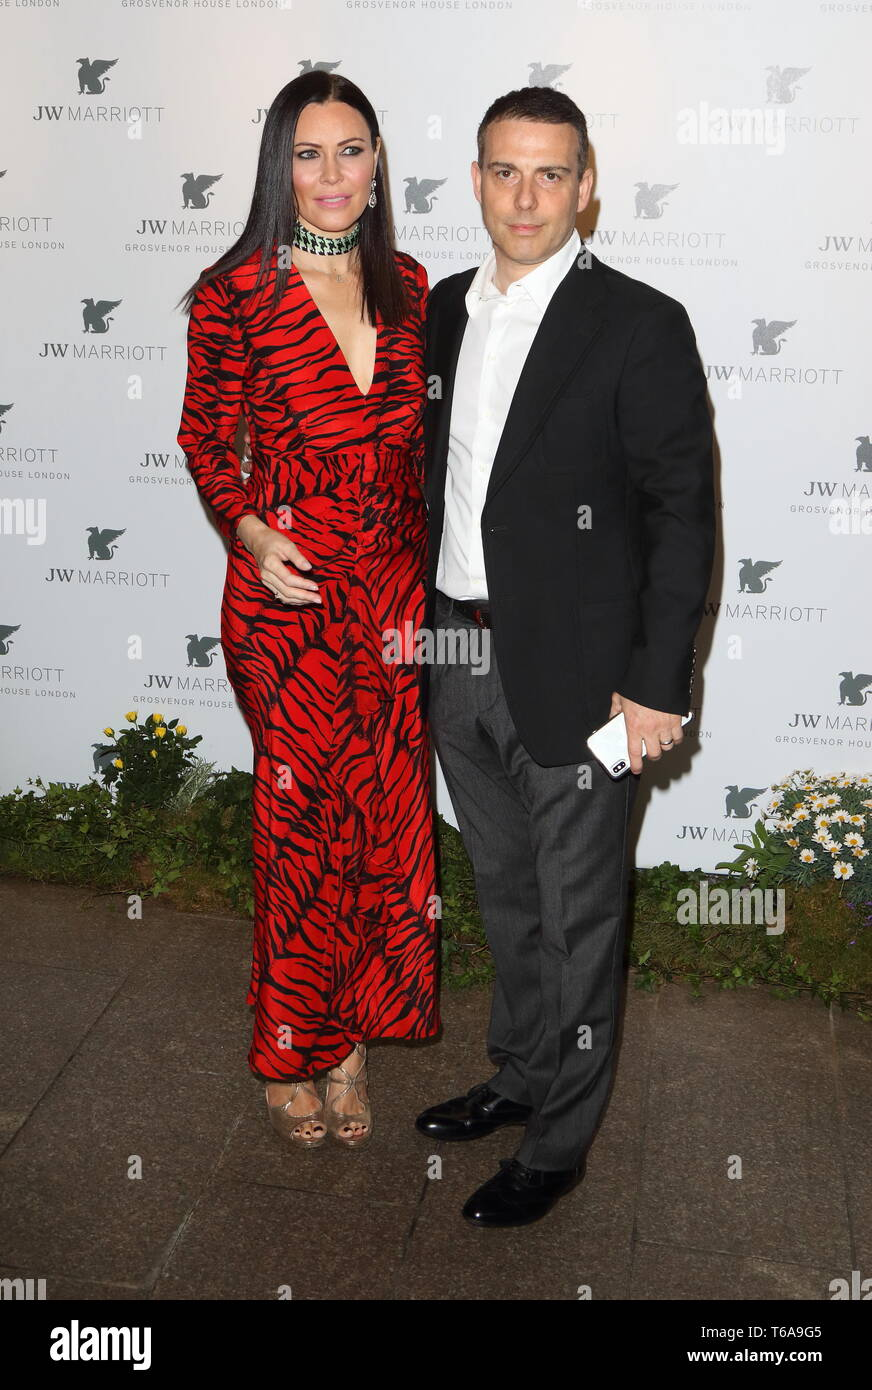 Linzi Stoppard and Will Stoppard at the JW Marriott Grosvenor House - 90th anniversary party at the JW Marriott Grosvenor House, Park Lane - Stock Image